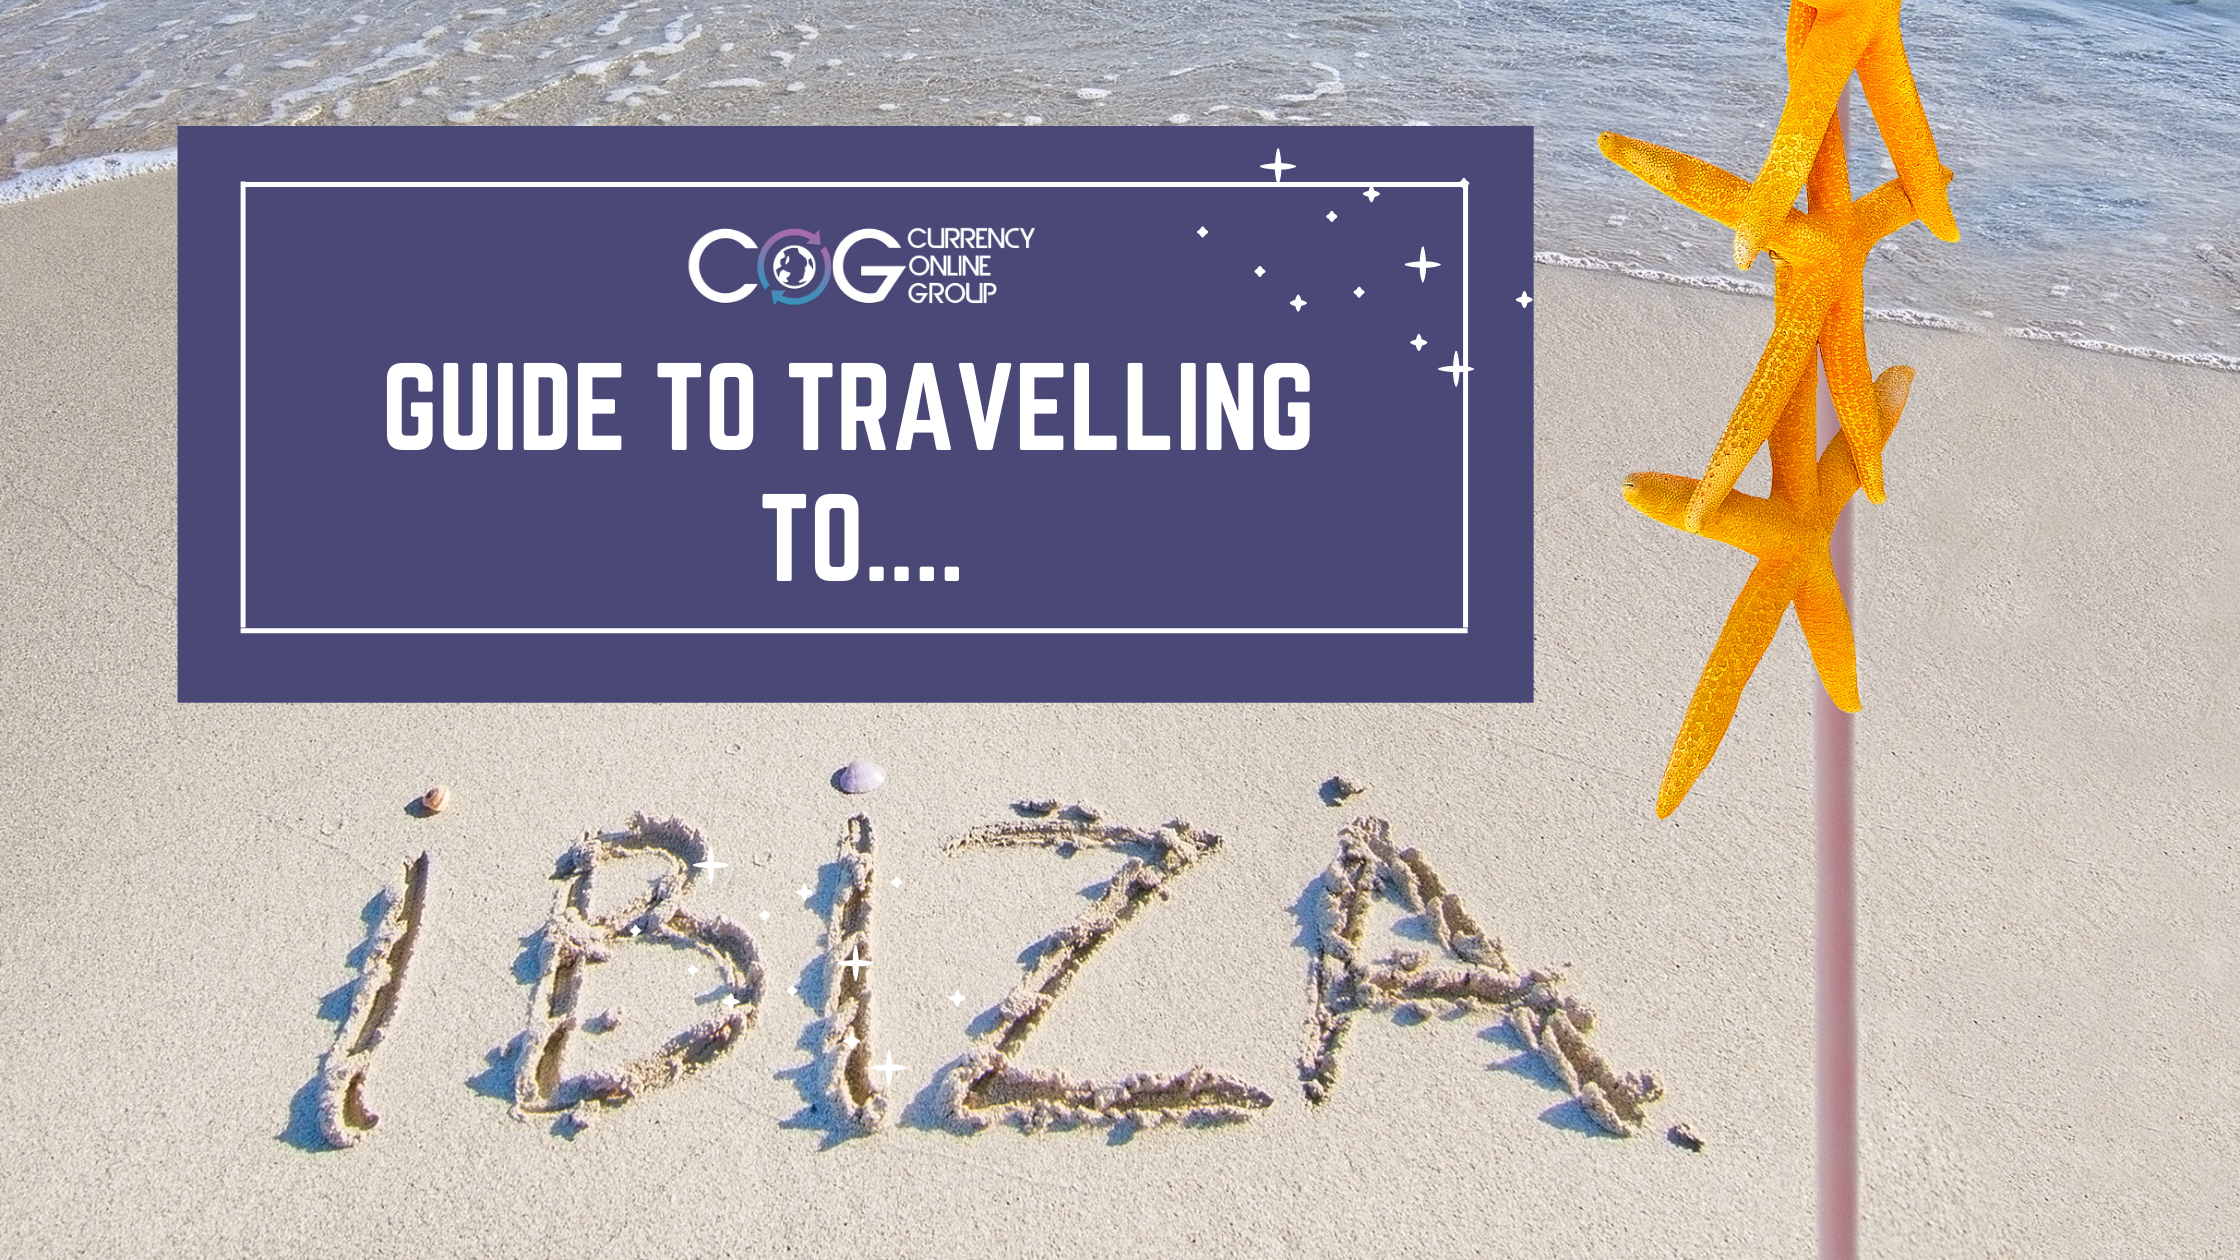 Guide to travelling to Ibiza